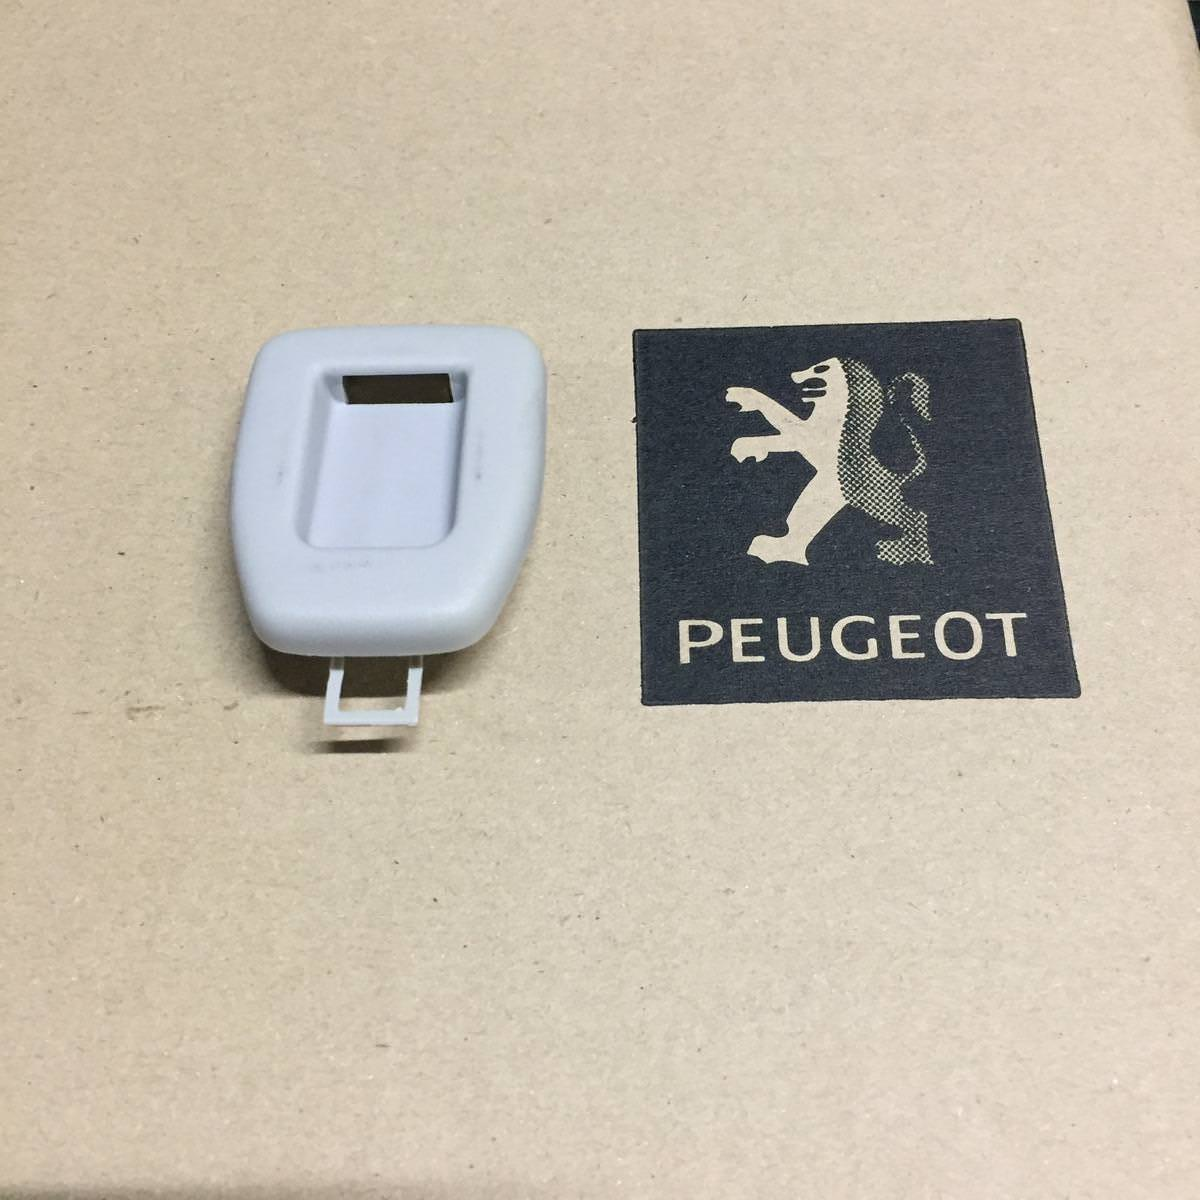 848240658b8 9 x PEUGEOT - SUN VISOR CATCH (end 10 30 2019 2 26 PM)